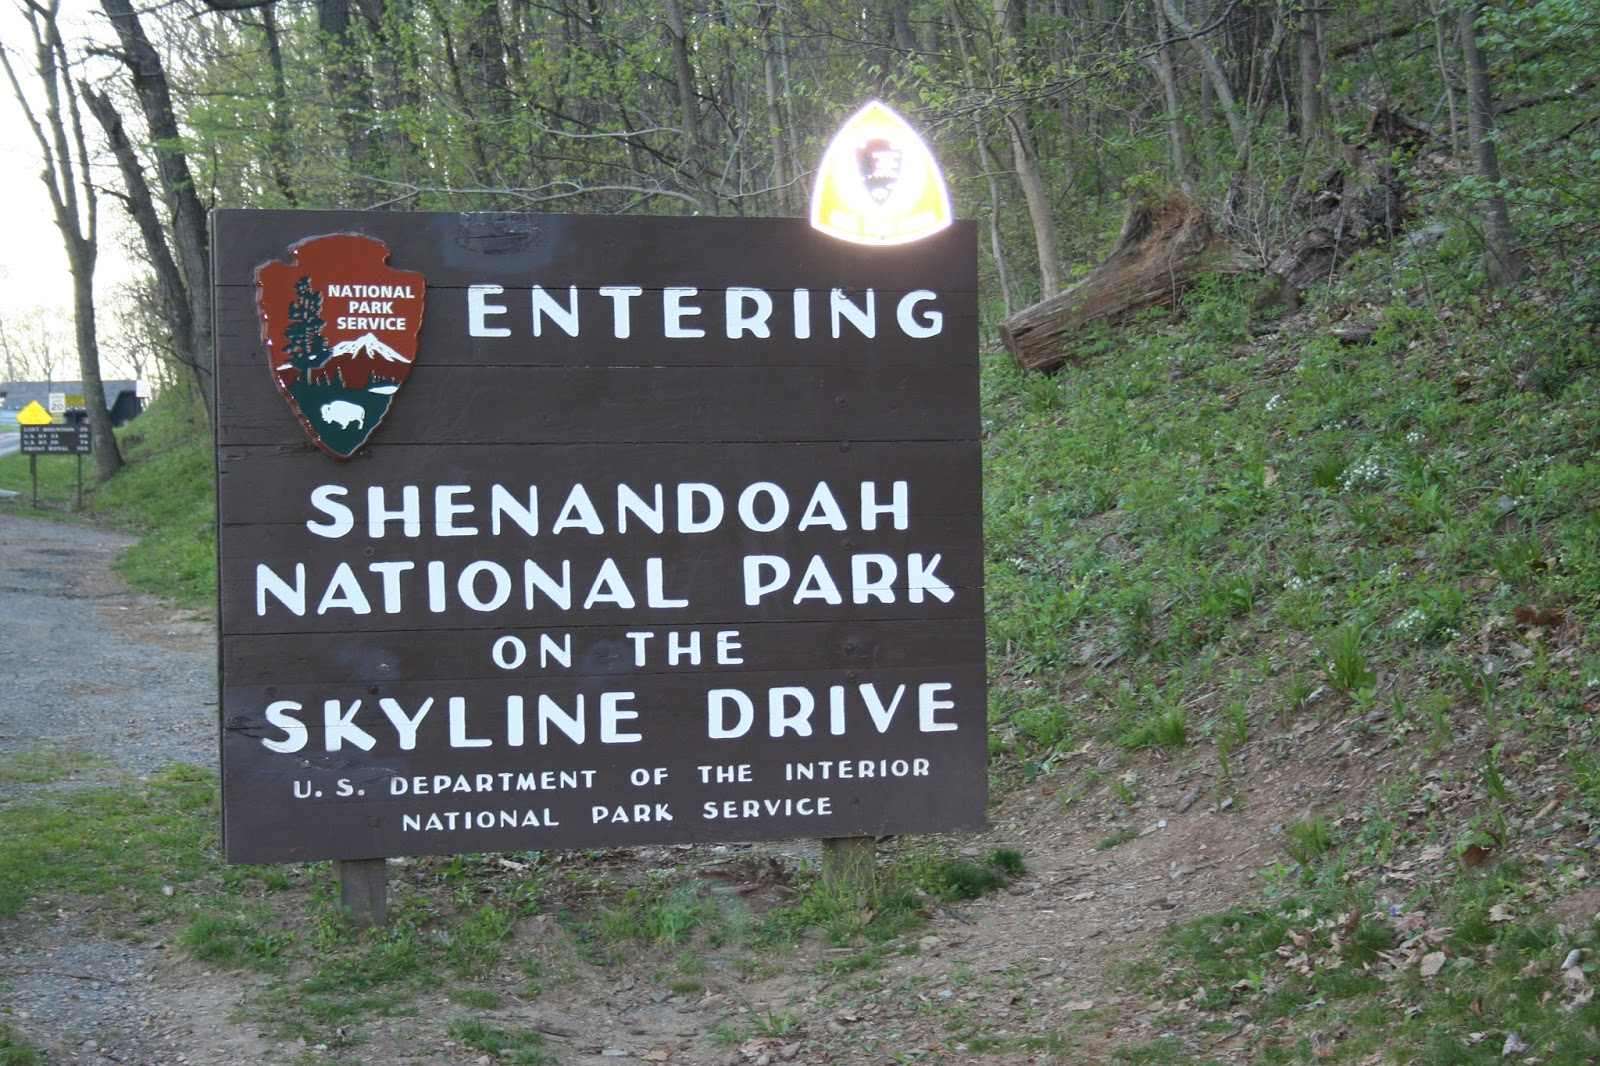 Ford Tune Up Deer Park >> Delco Daily Top Ten: Sights to See in Shenandoah National Park